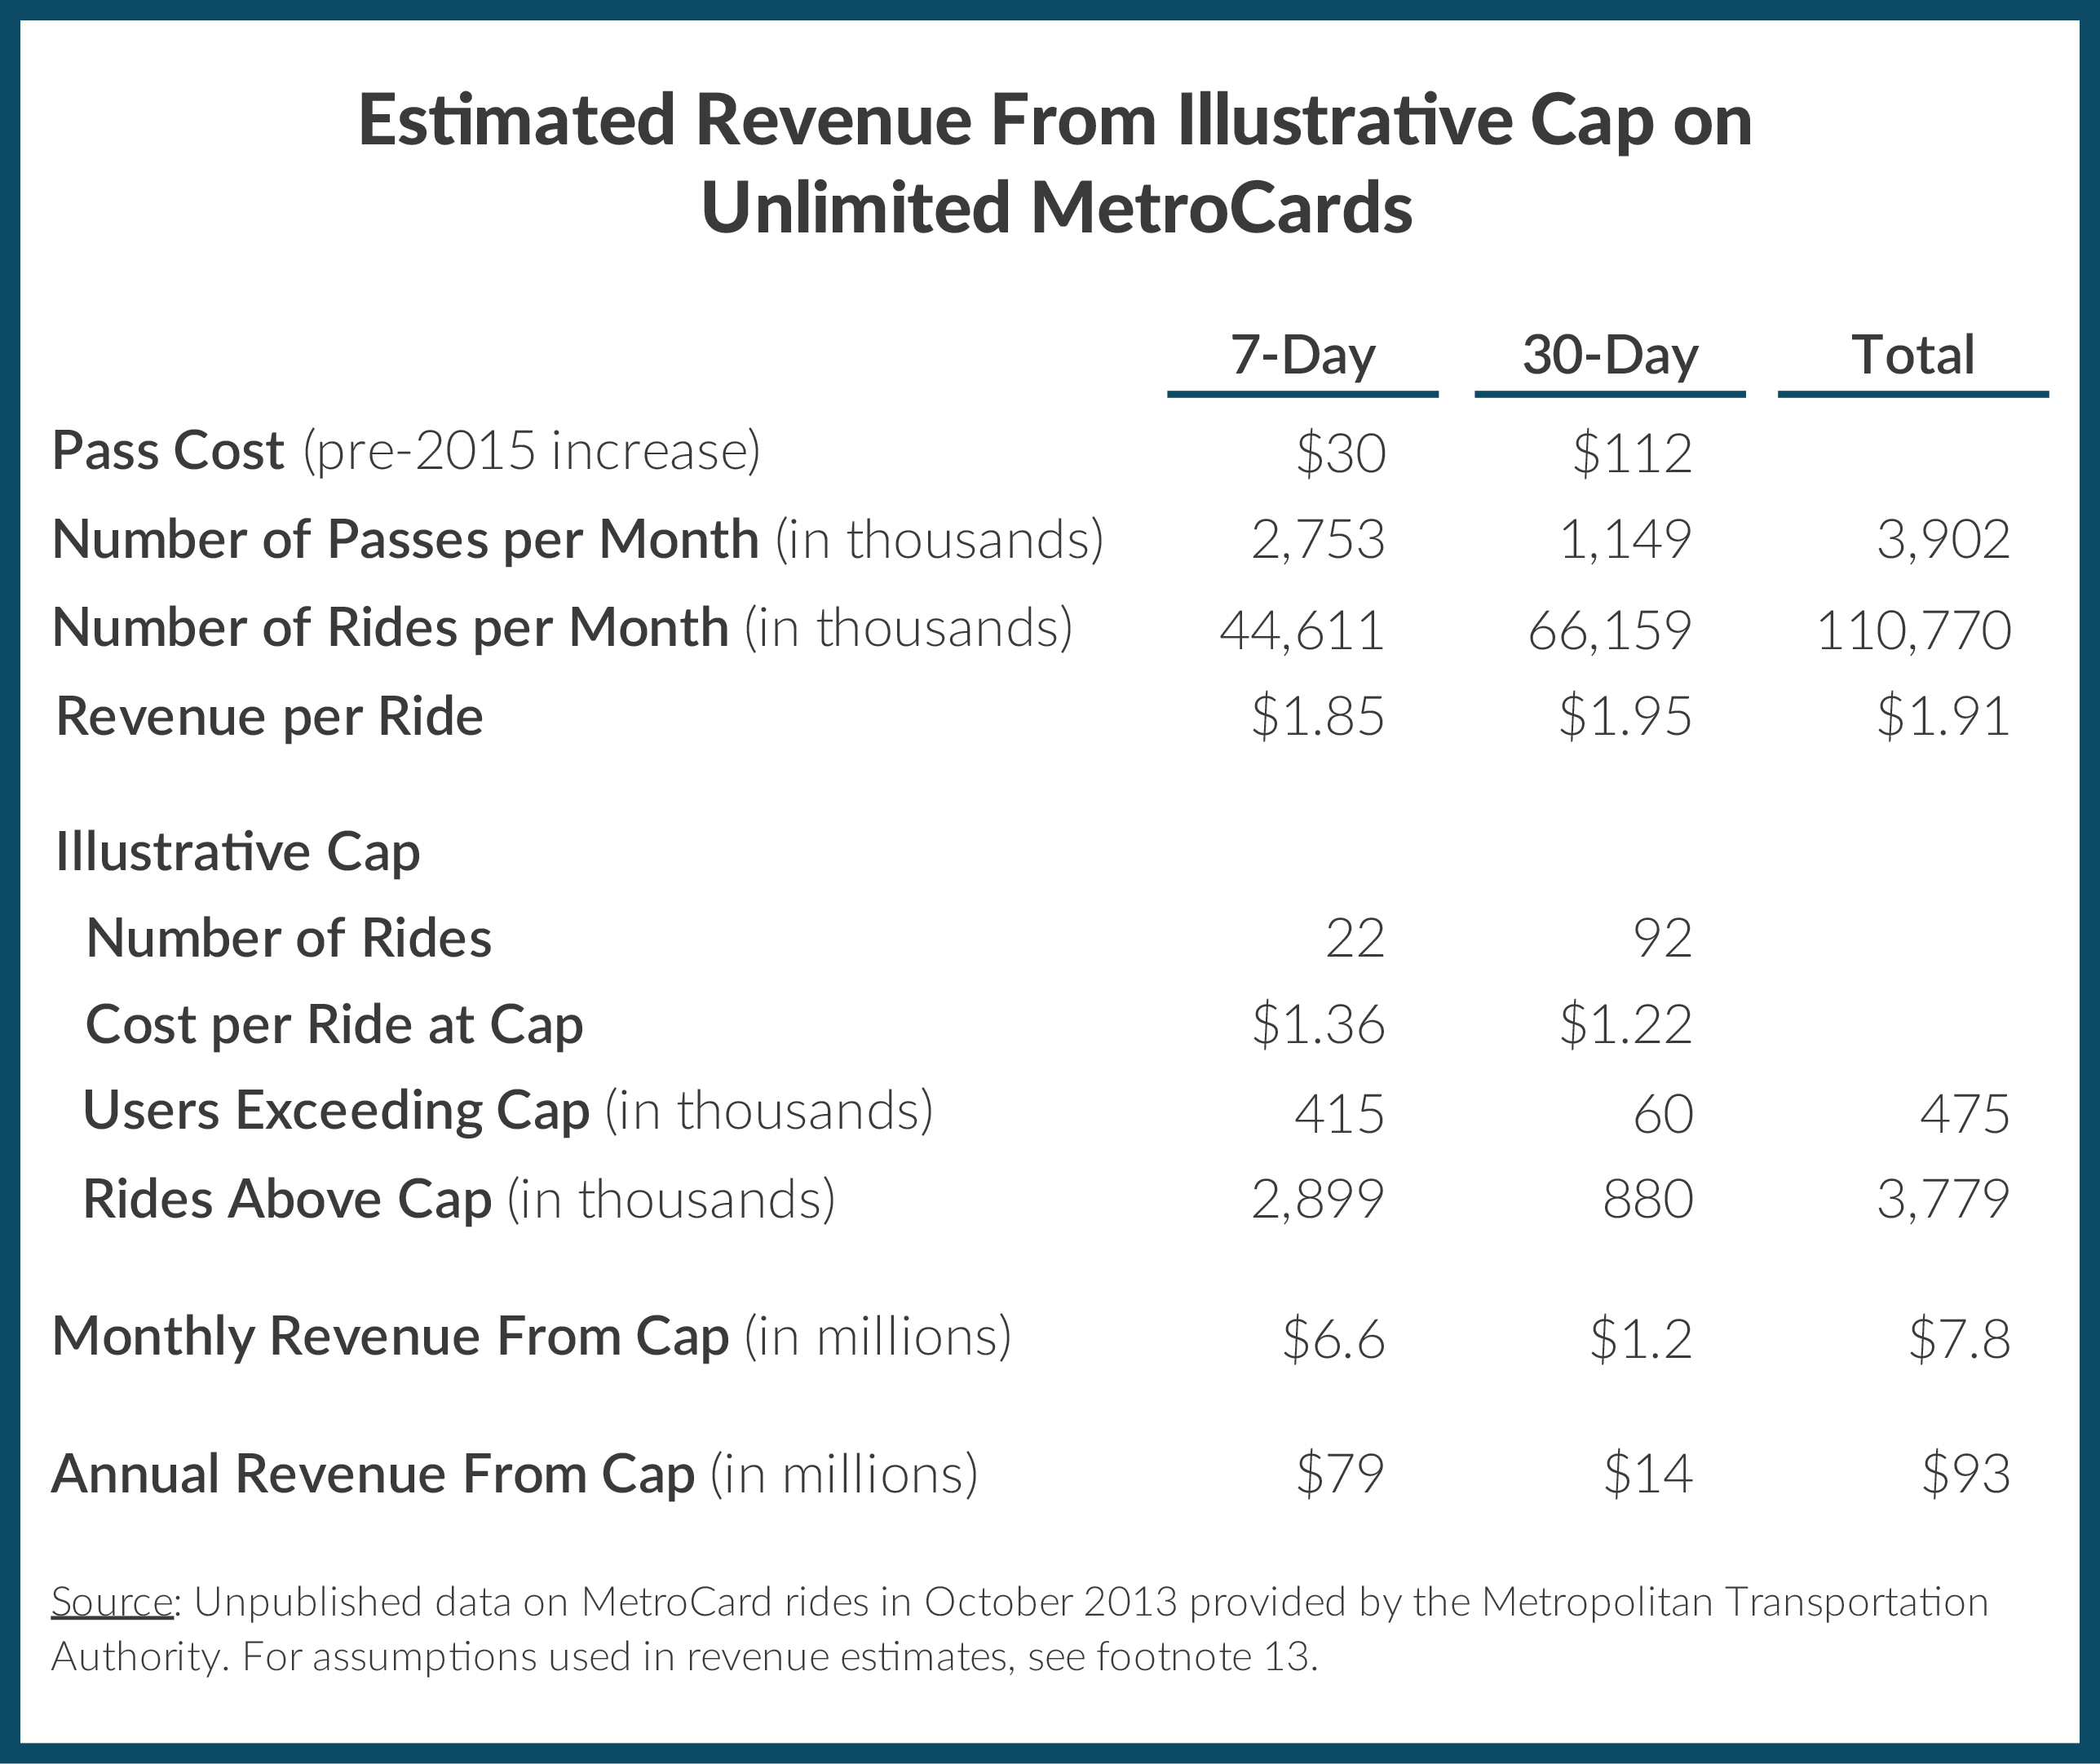 Estimated Revenue From Illustrative Cap on Unlimited MetroCards